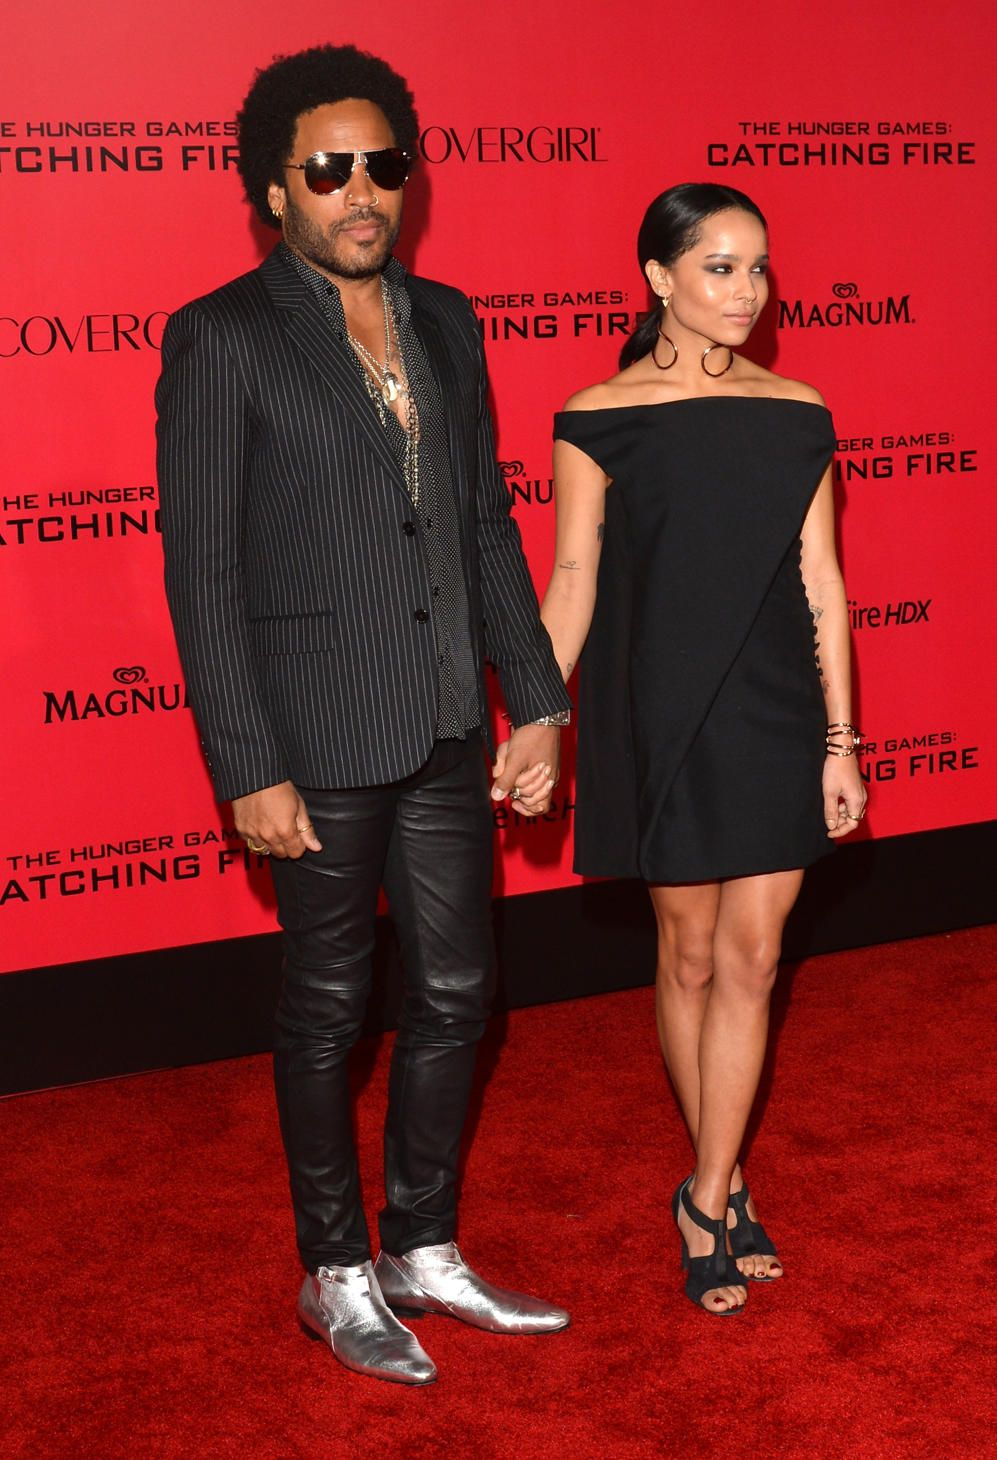 Lenny Kravitz And His Daughter Zoe At The Premiere Of The Hunger